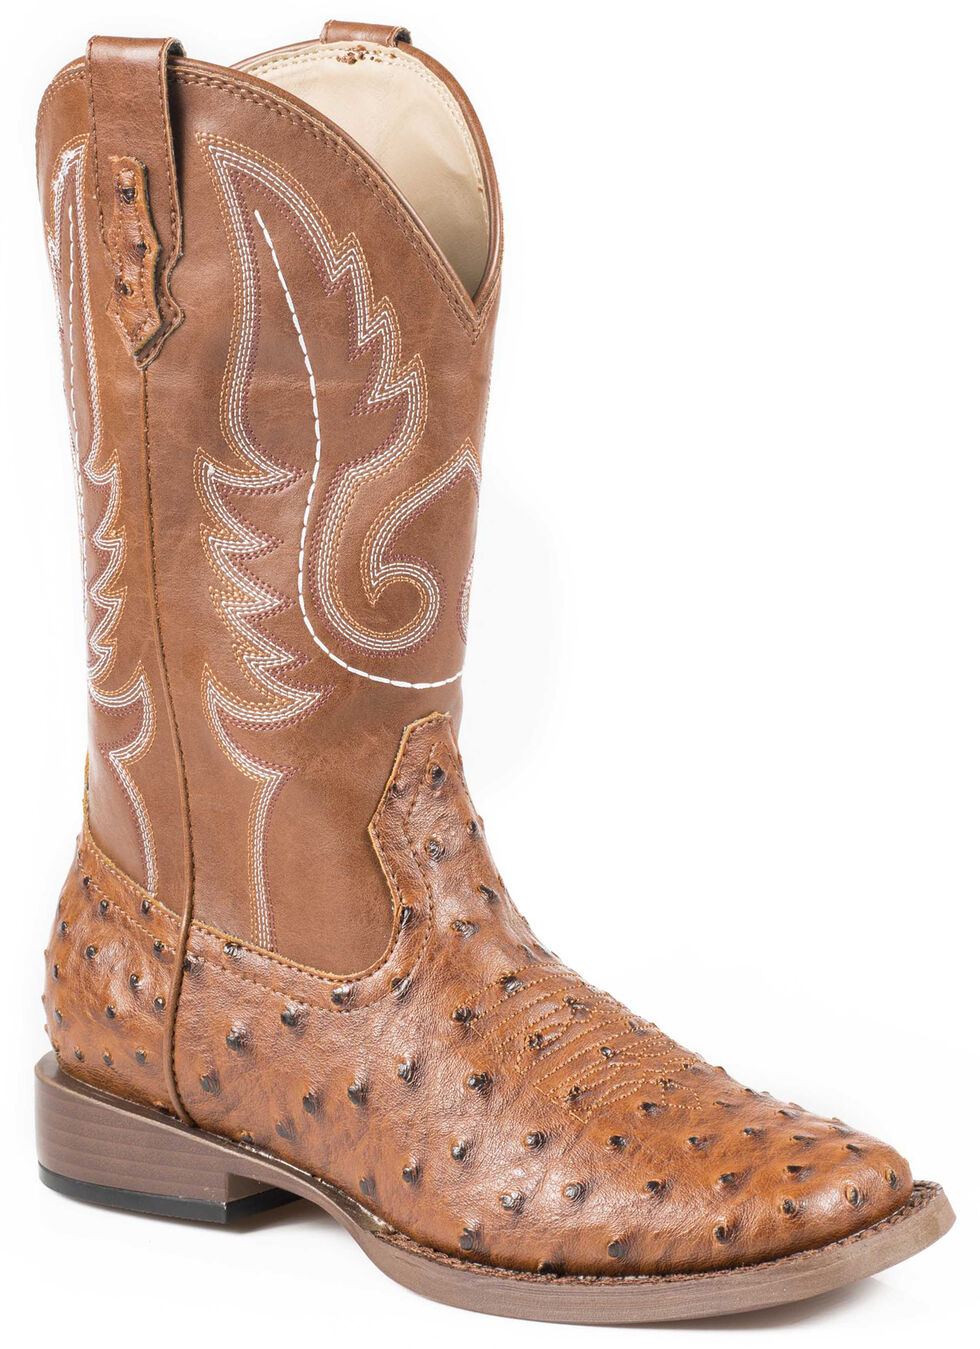 Roper Youth Boys' Ostrich Print Cowboy Boots - Square Toe, Tan, hi-res